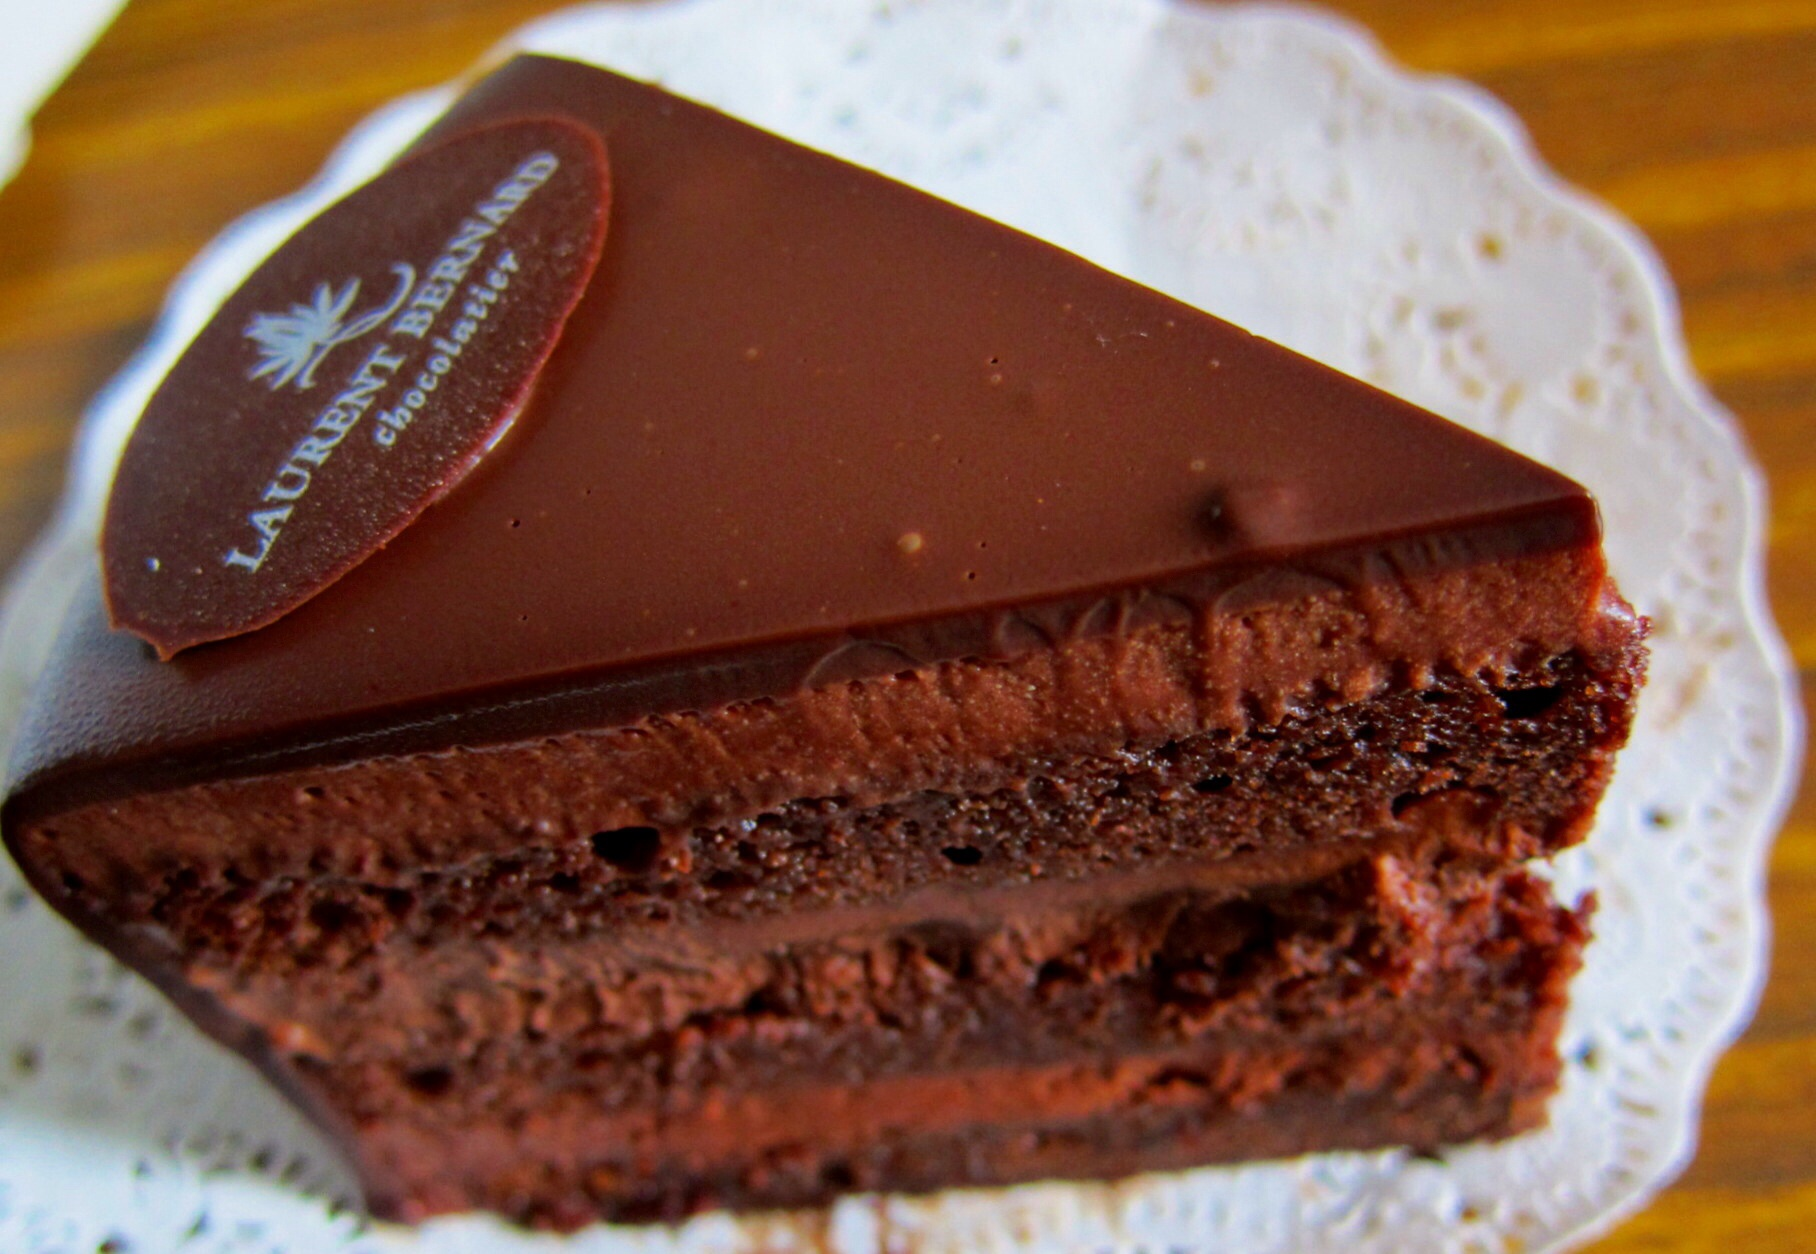 Pure Chocolate Cake Images : In Search for the Best Chocolate Cake in Singapore ...